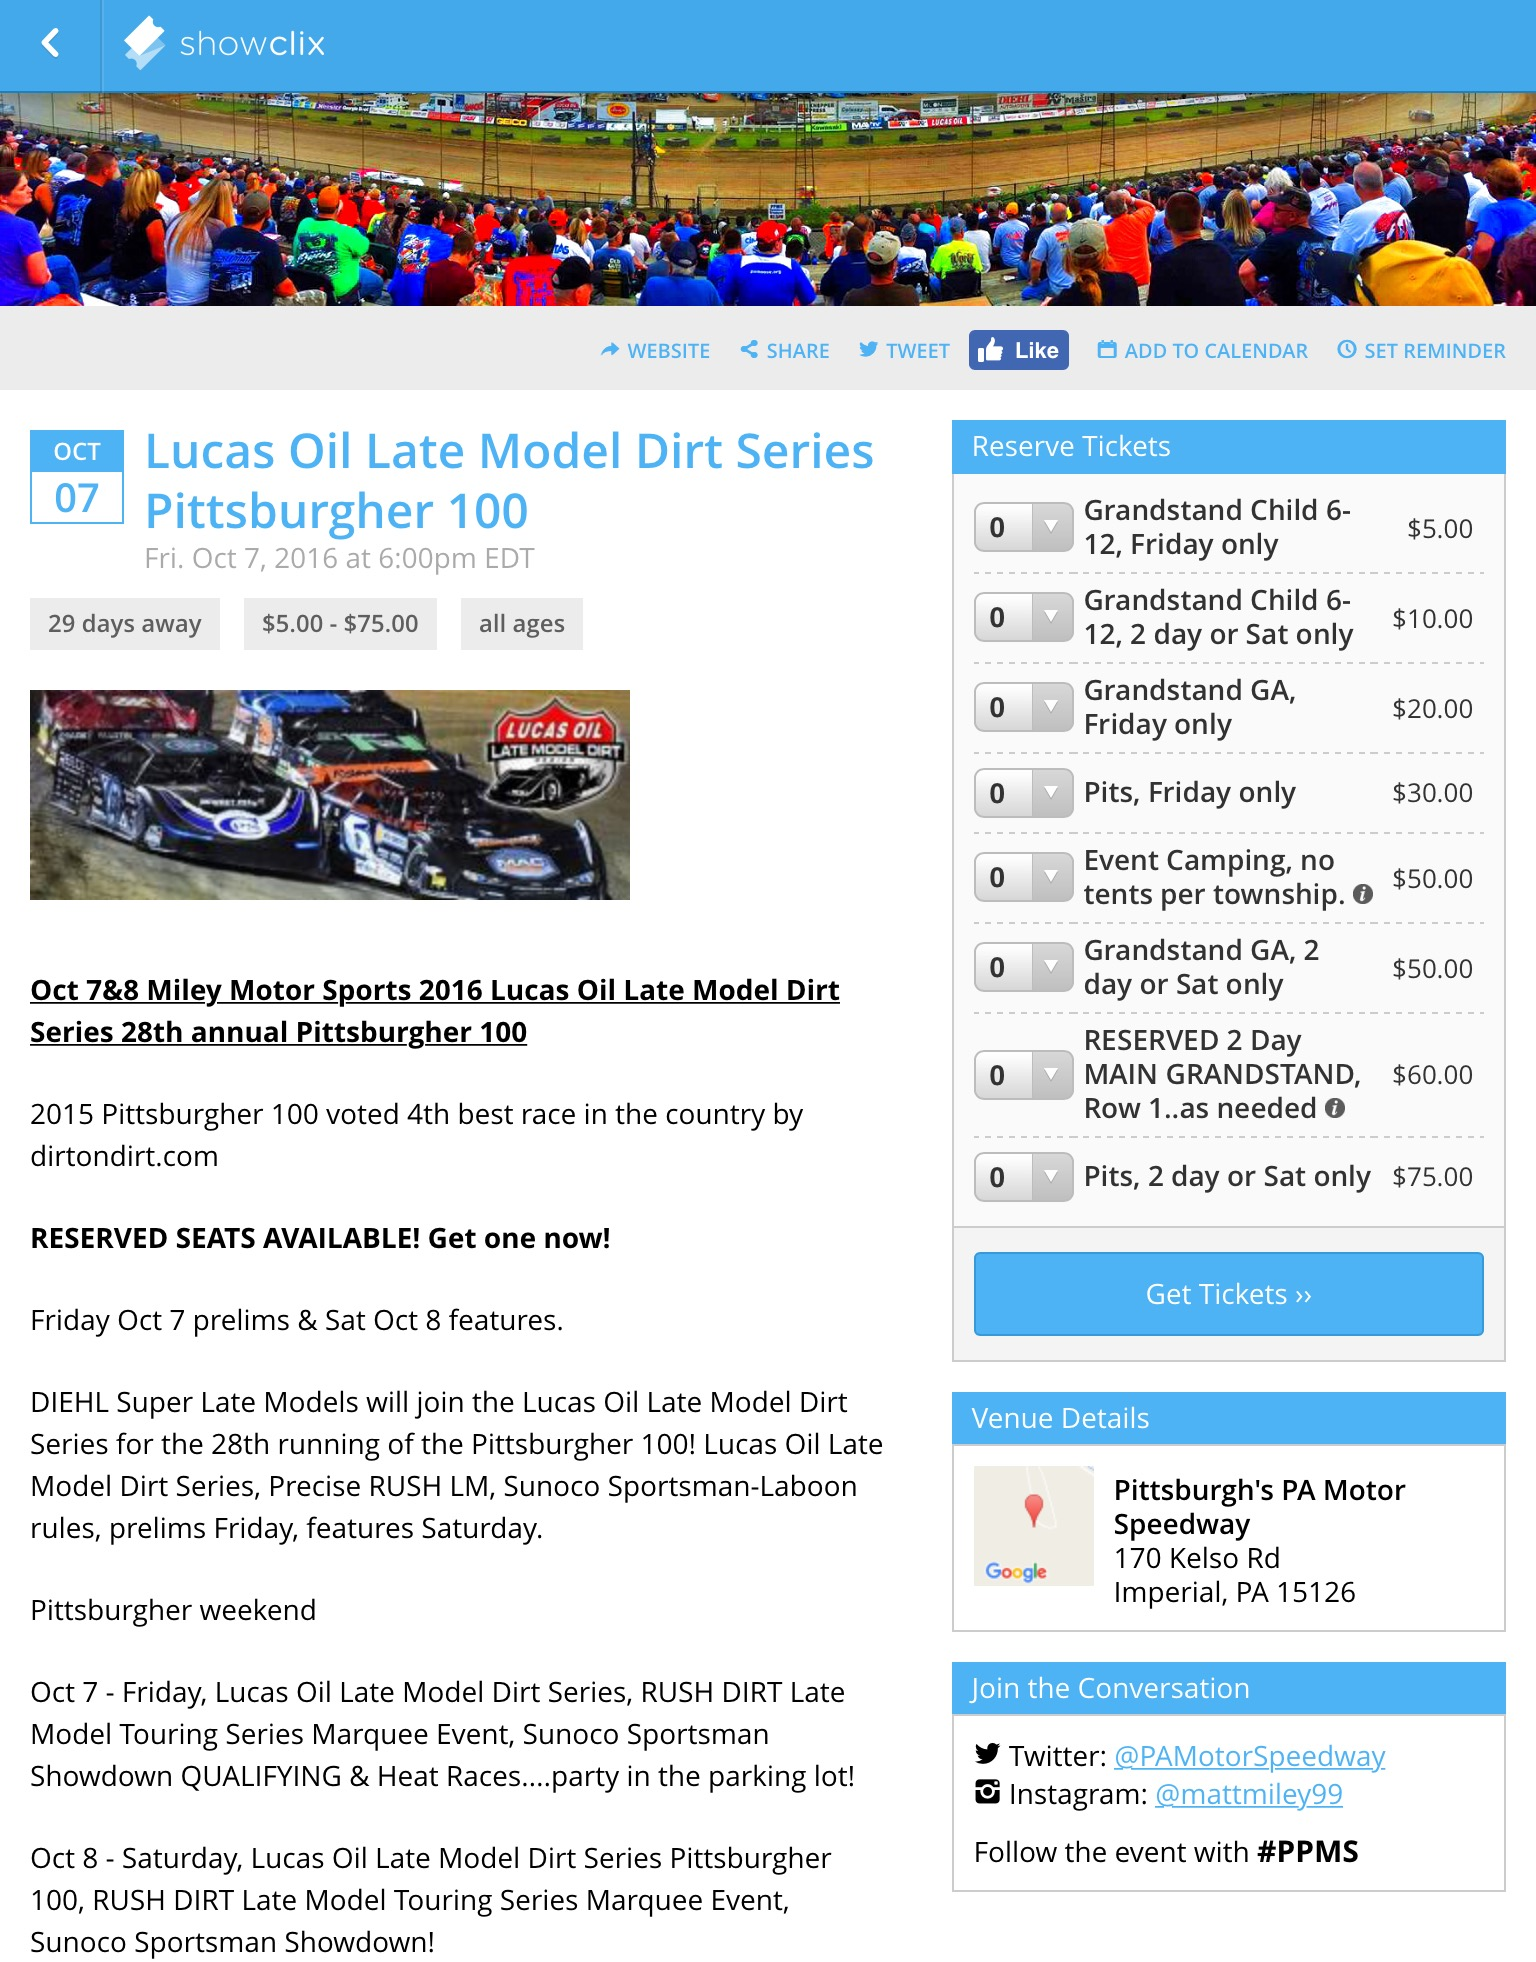 Prices Pittsburgher 100